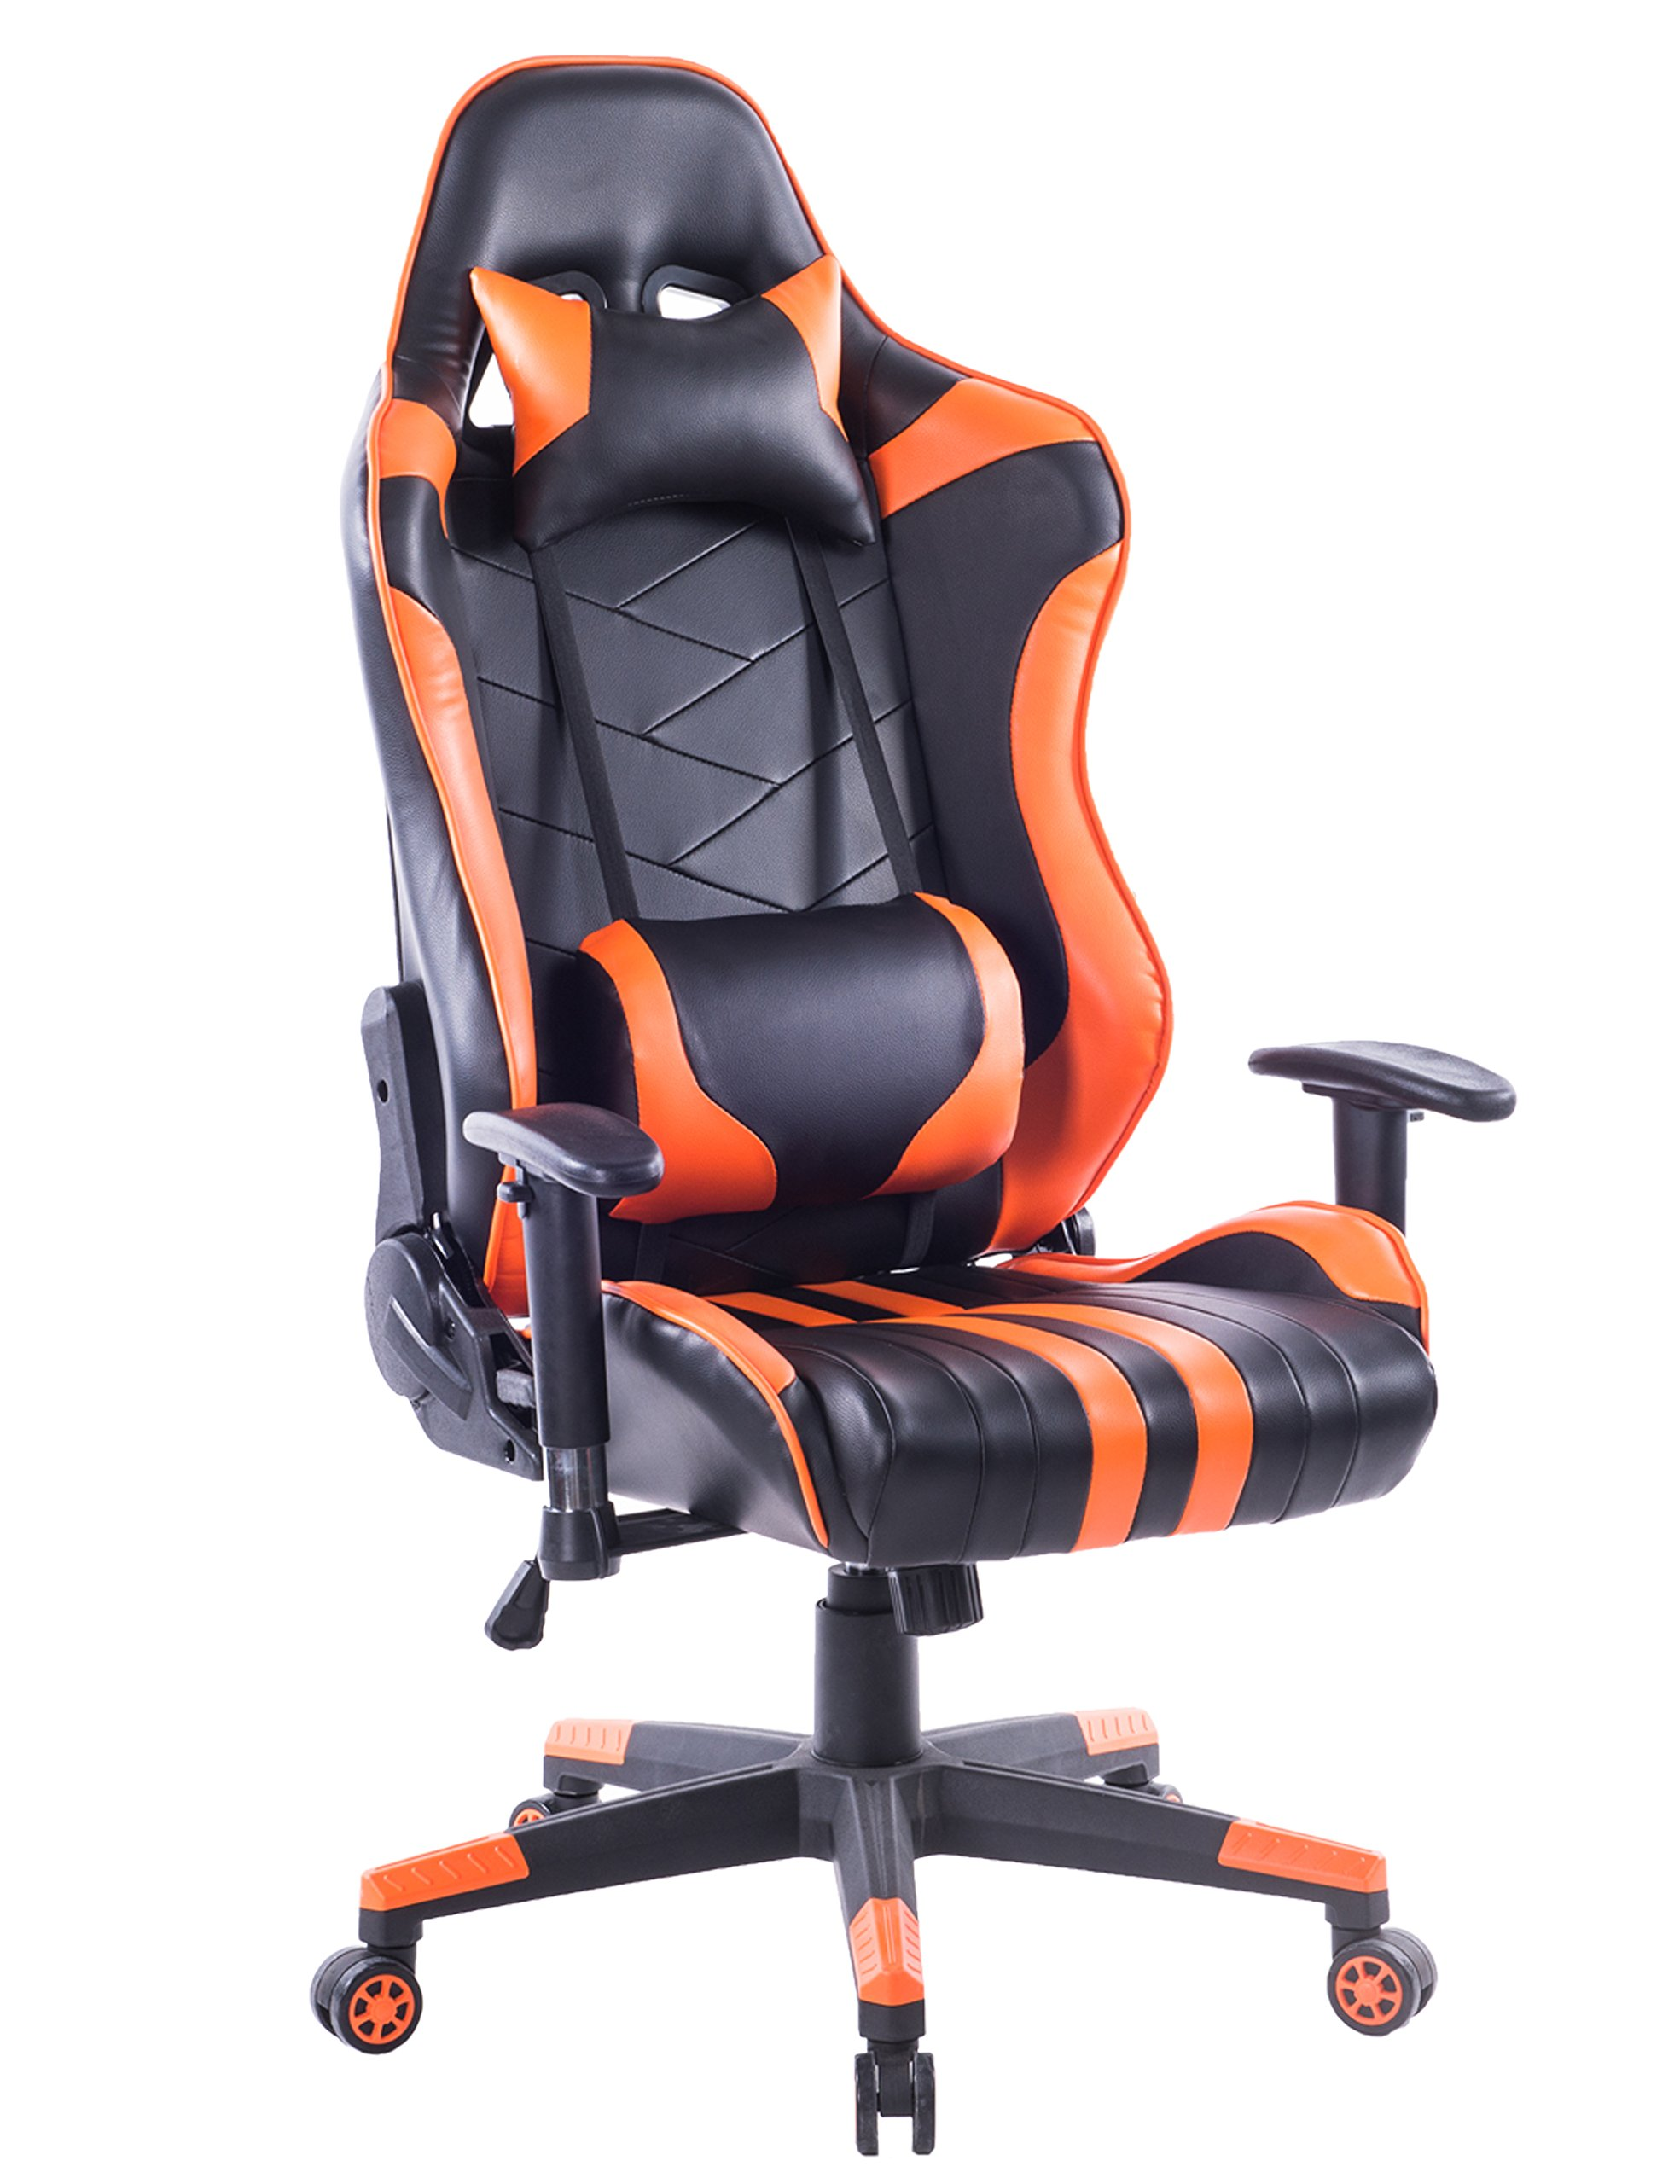 Killbee Large Size PVC Ergonomic Reclining Racing Chair Executive Office Chair with Headrest and Lumbar Support (Orange)